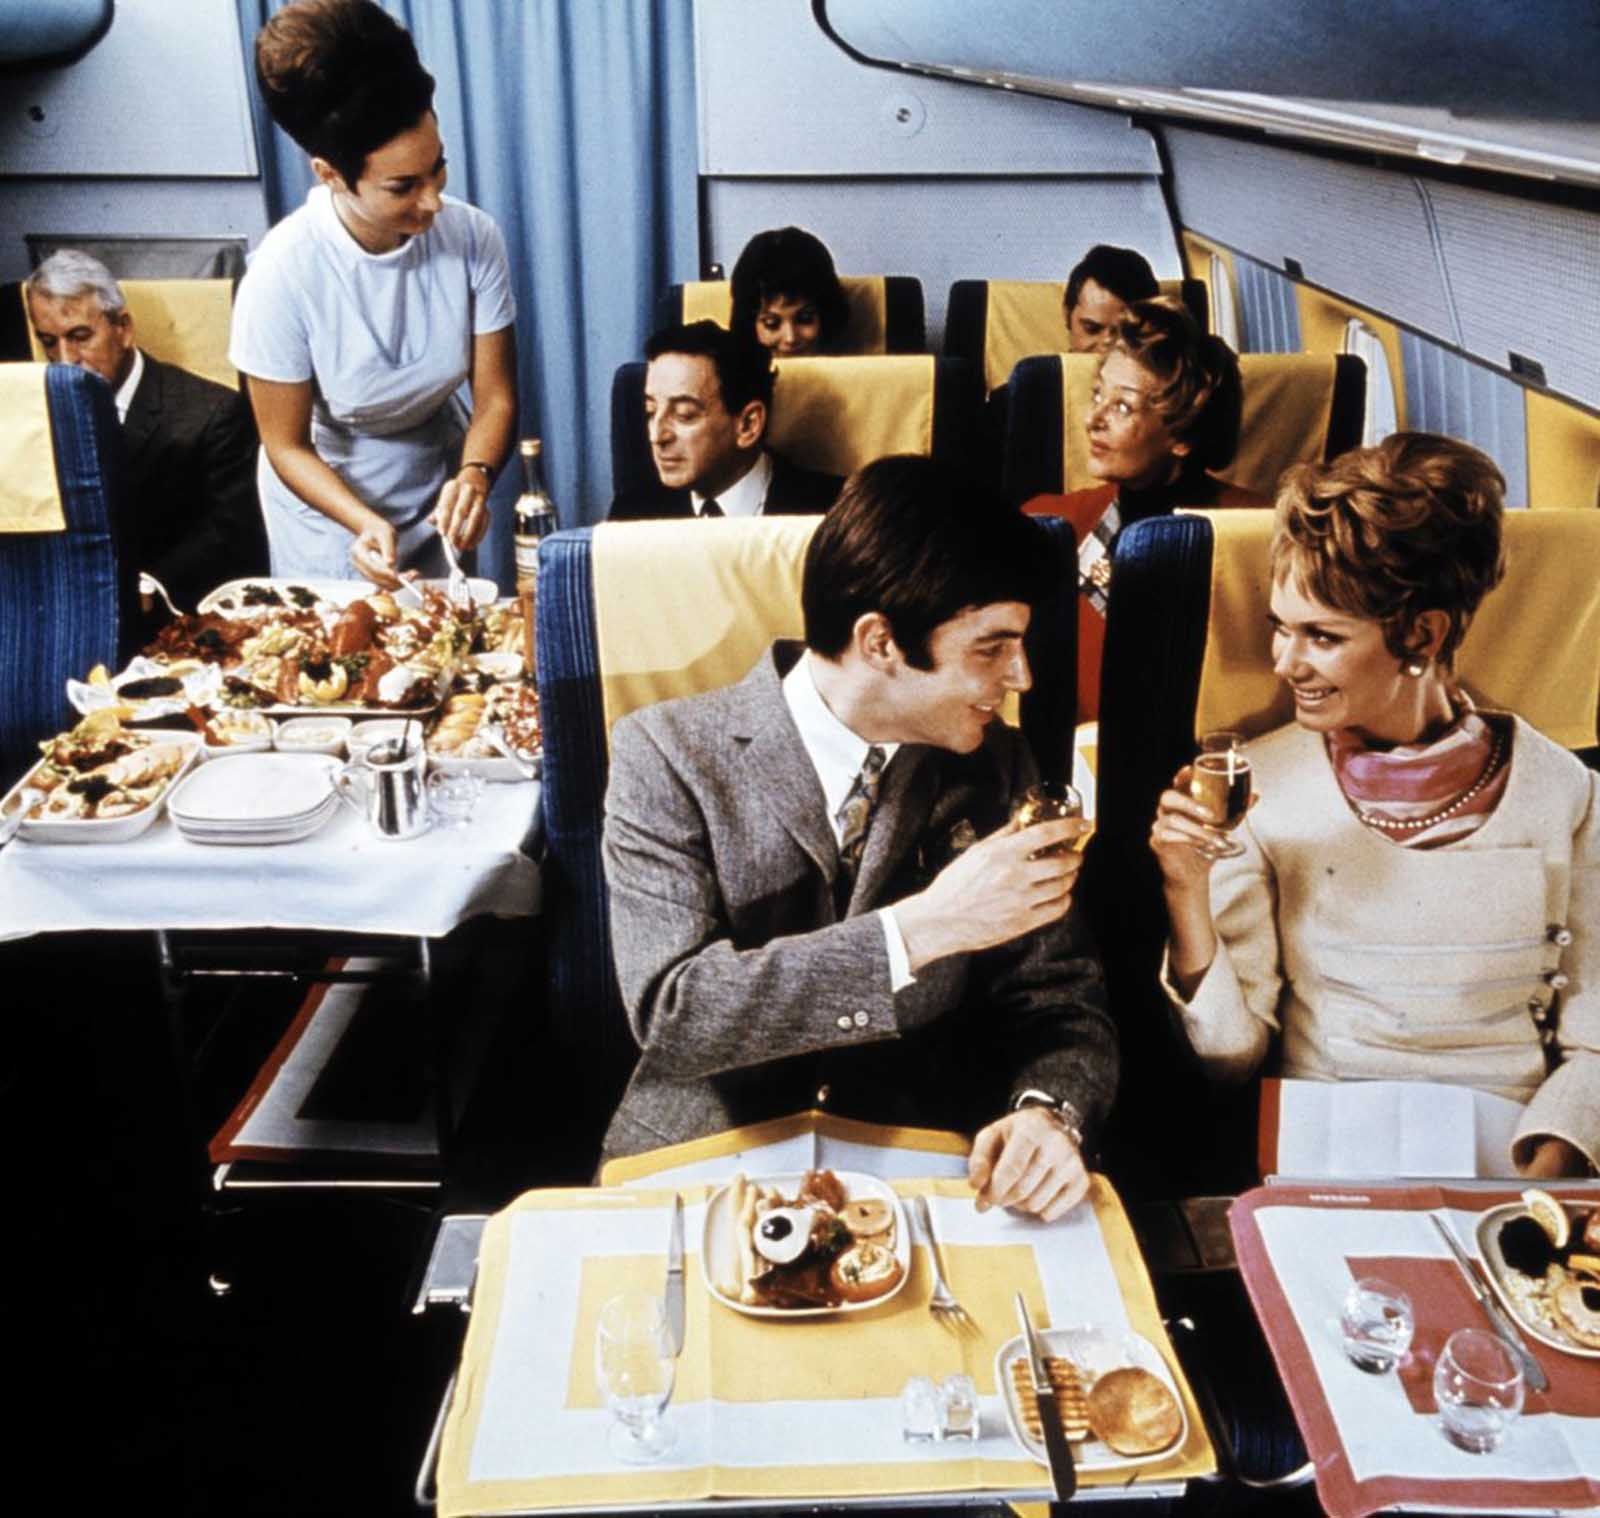 There was a wide variety of food selections offered by these airliners.